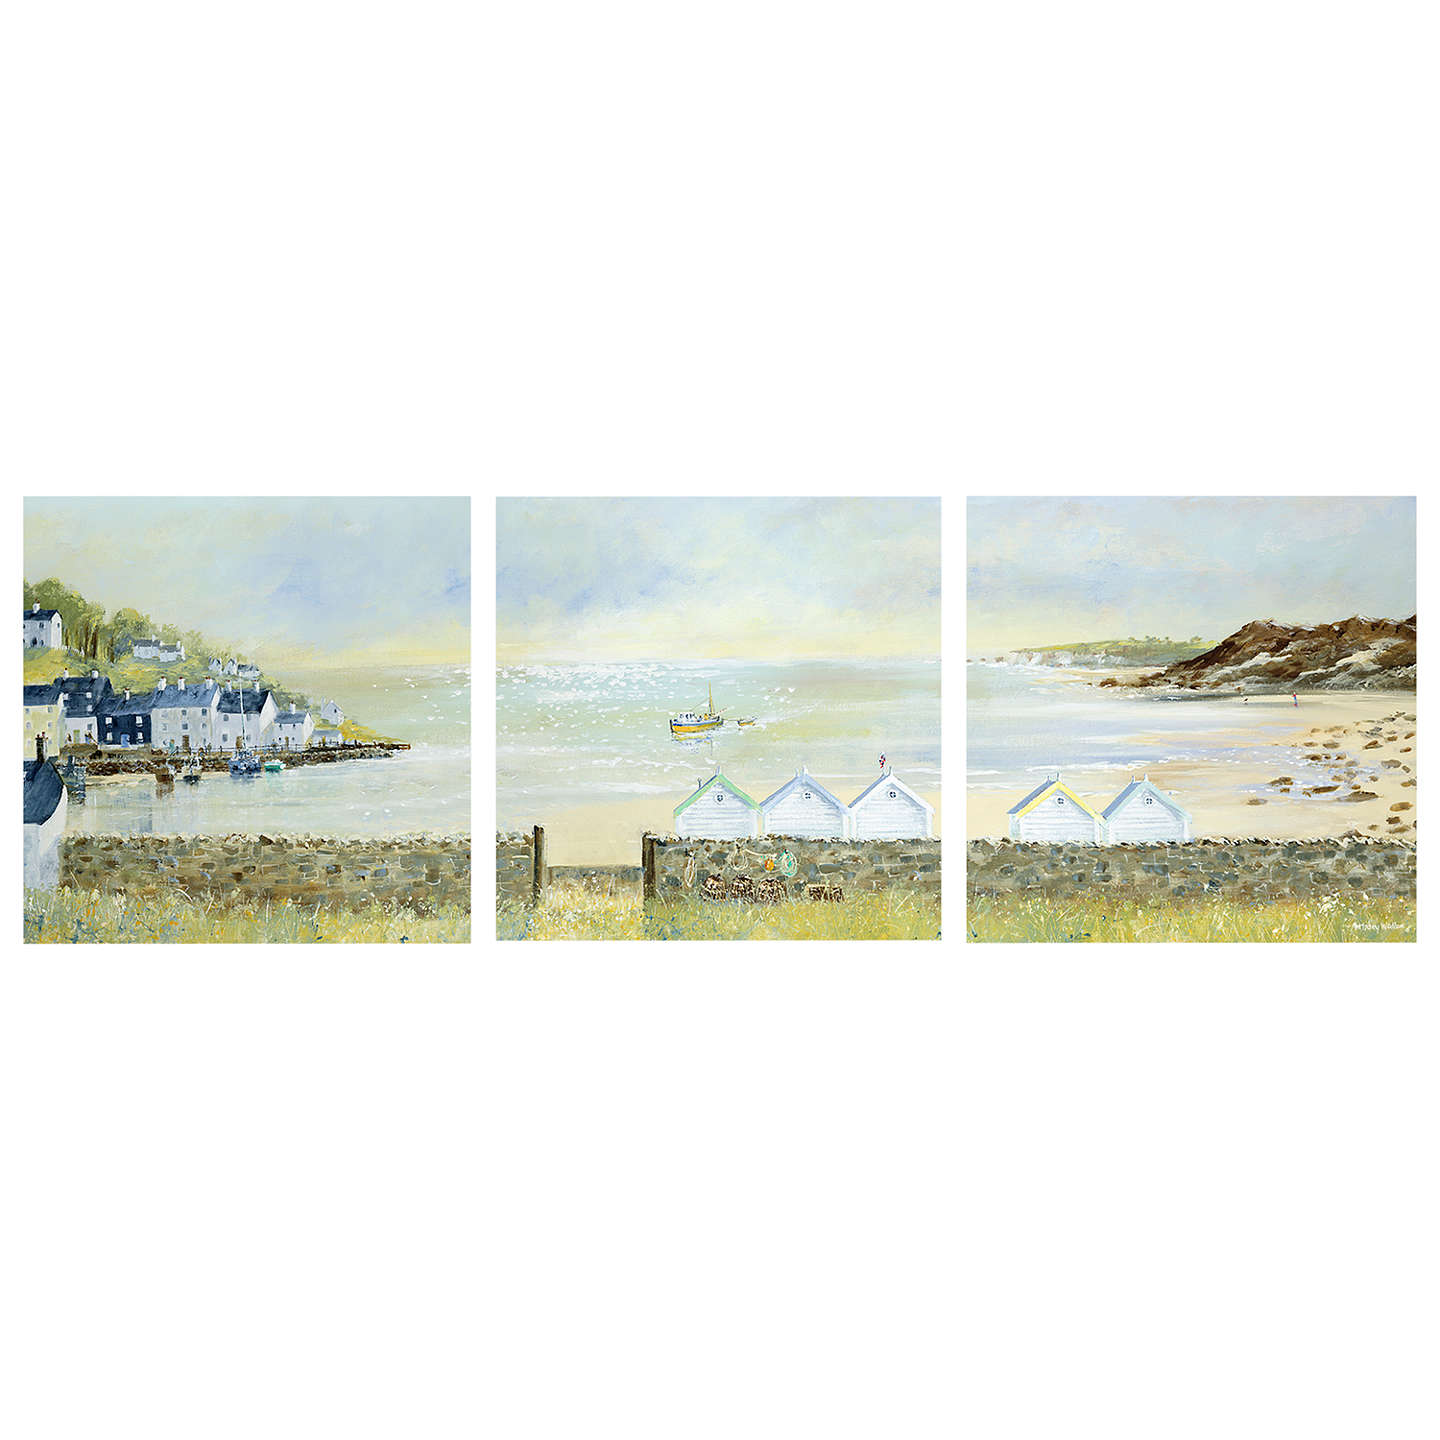 BuyAnthony Waller - Beach Hut Parade Triptych, 105 x 35cm Online at johnlewis.com